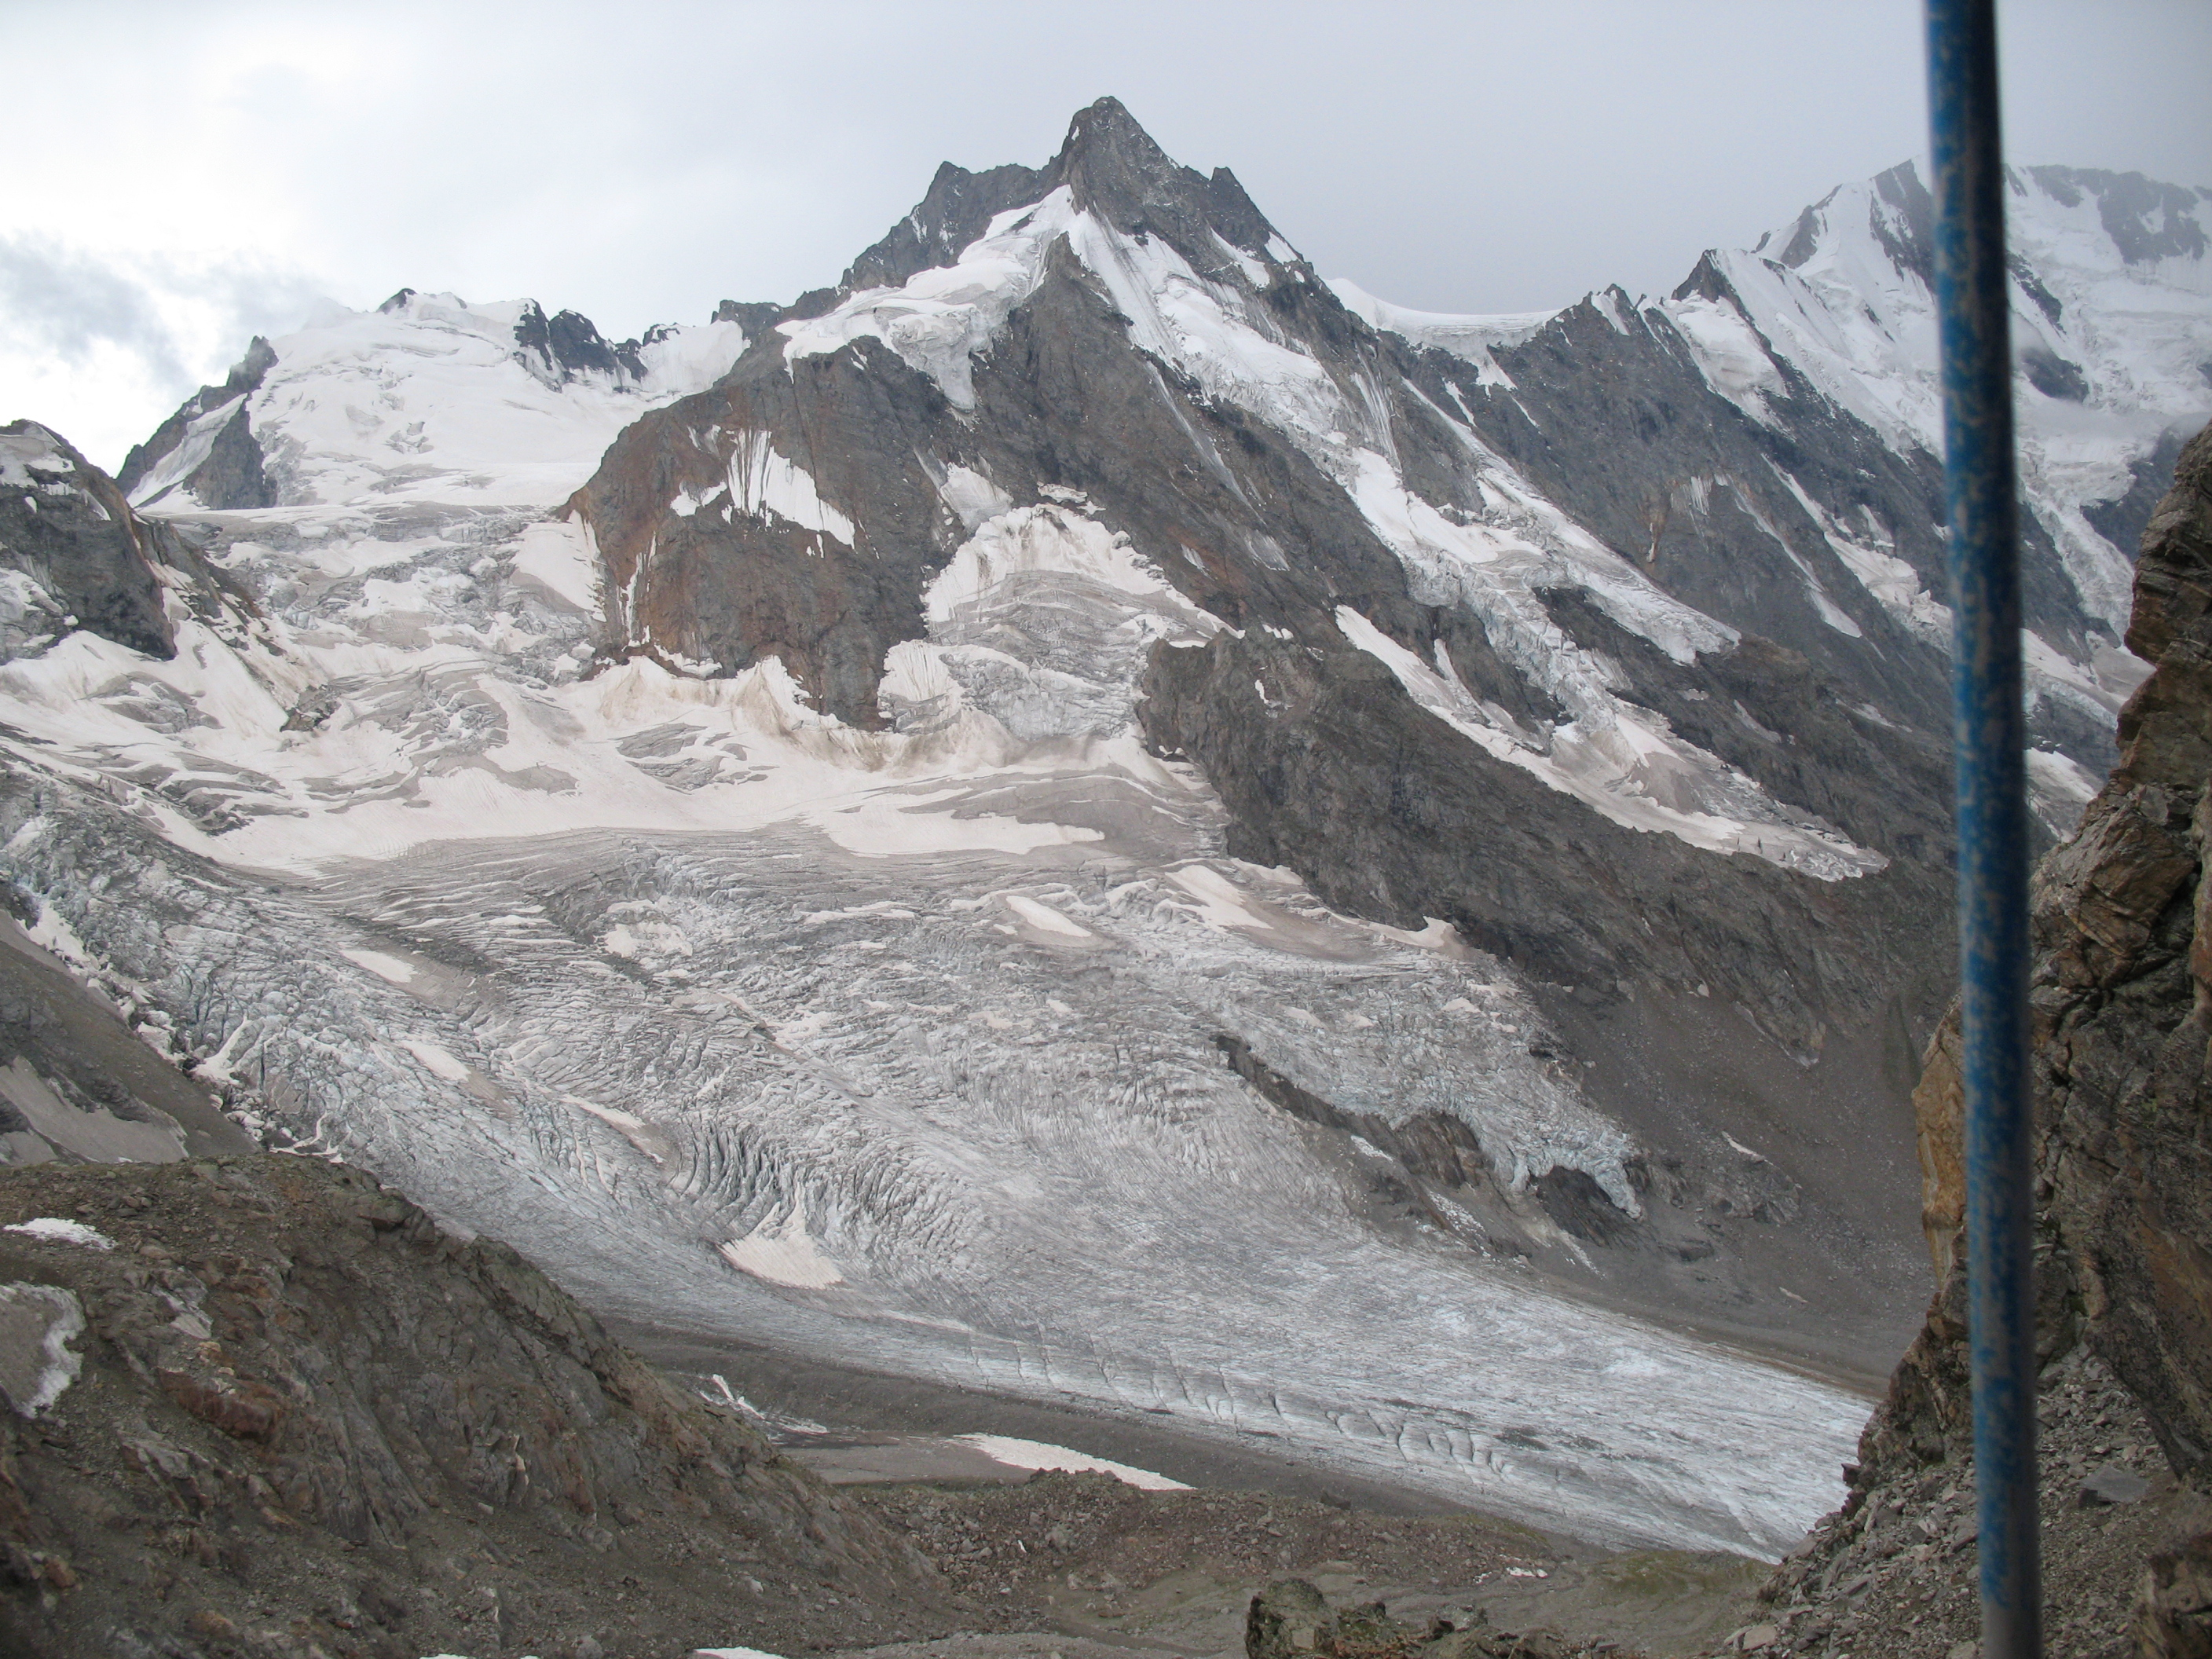 Djankuat glacier in August 2007 (taken by Victor V. Popovnin on 26/08/2007)